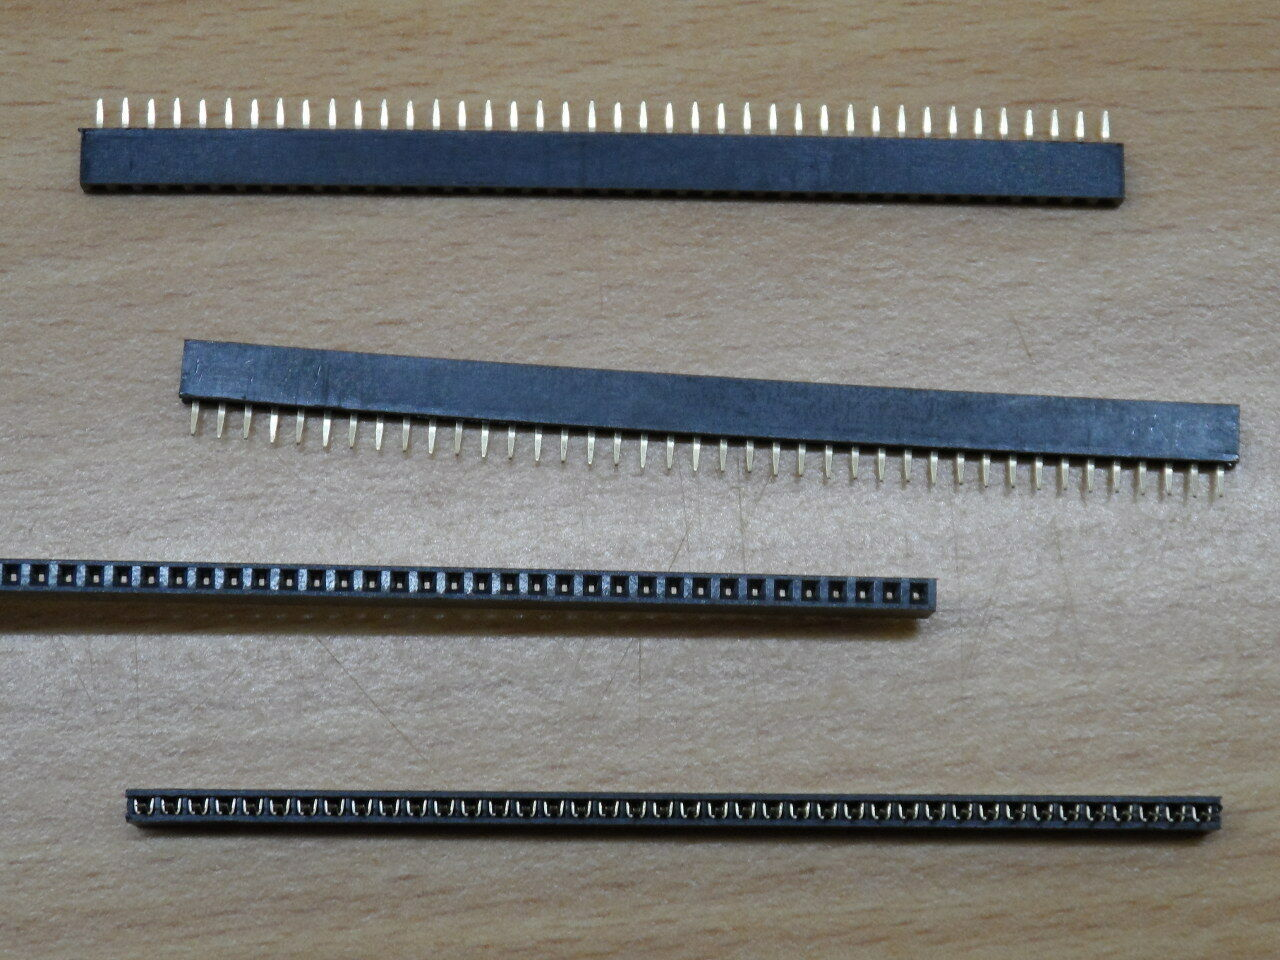 2x 2mm Pitch 40 Pin Sil Socket Way Sip Strip Female 304 Ic 8 Or 2x4 1 Of See More